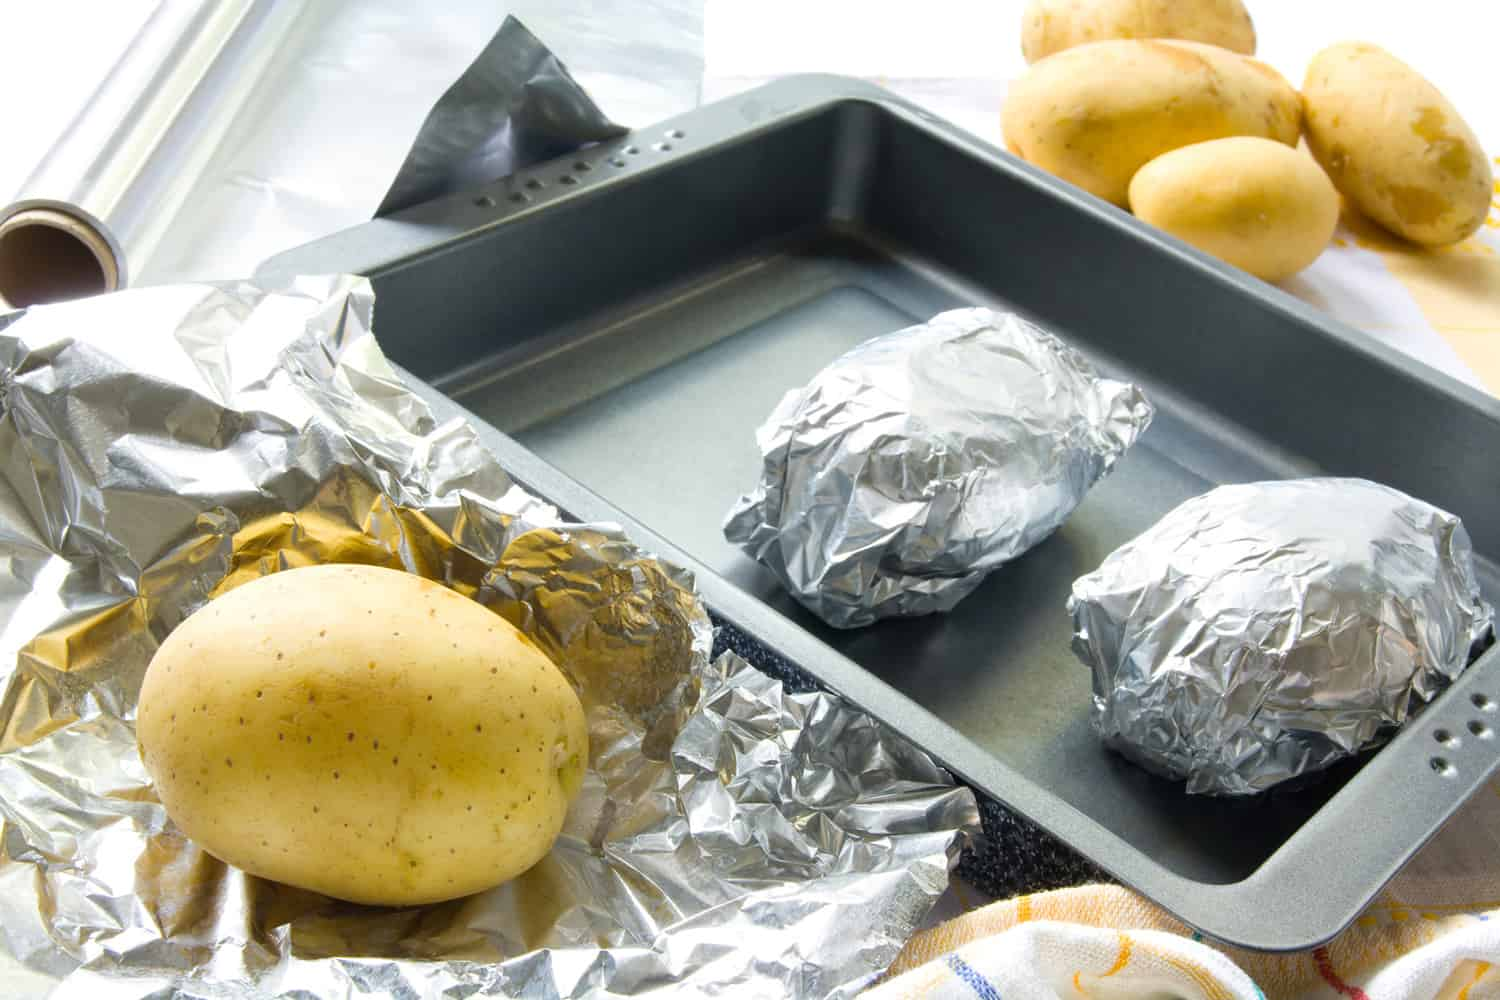 Preparation of baked potatoes. Potatoes are being wrapped in aluminum foil.